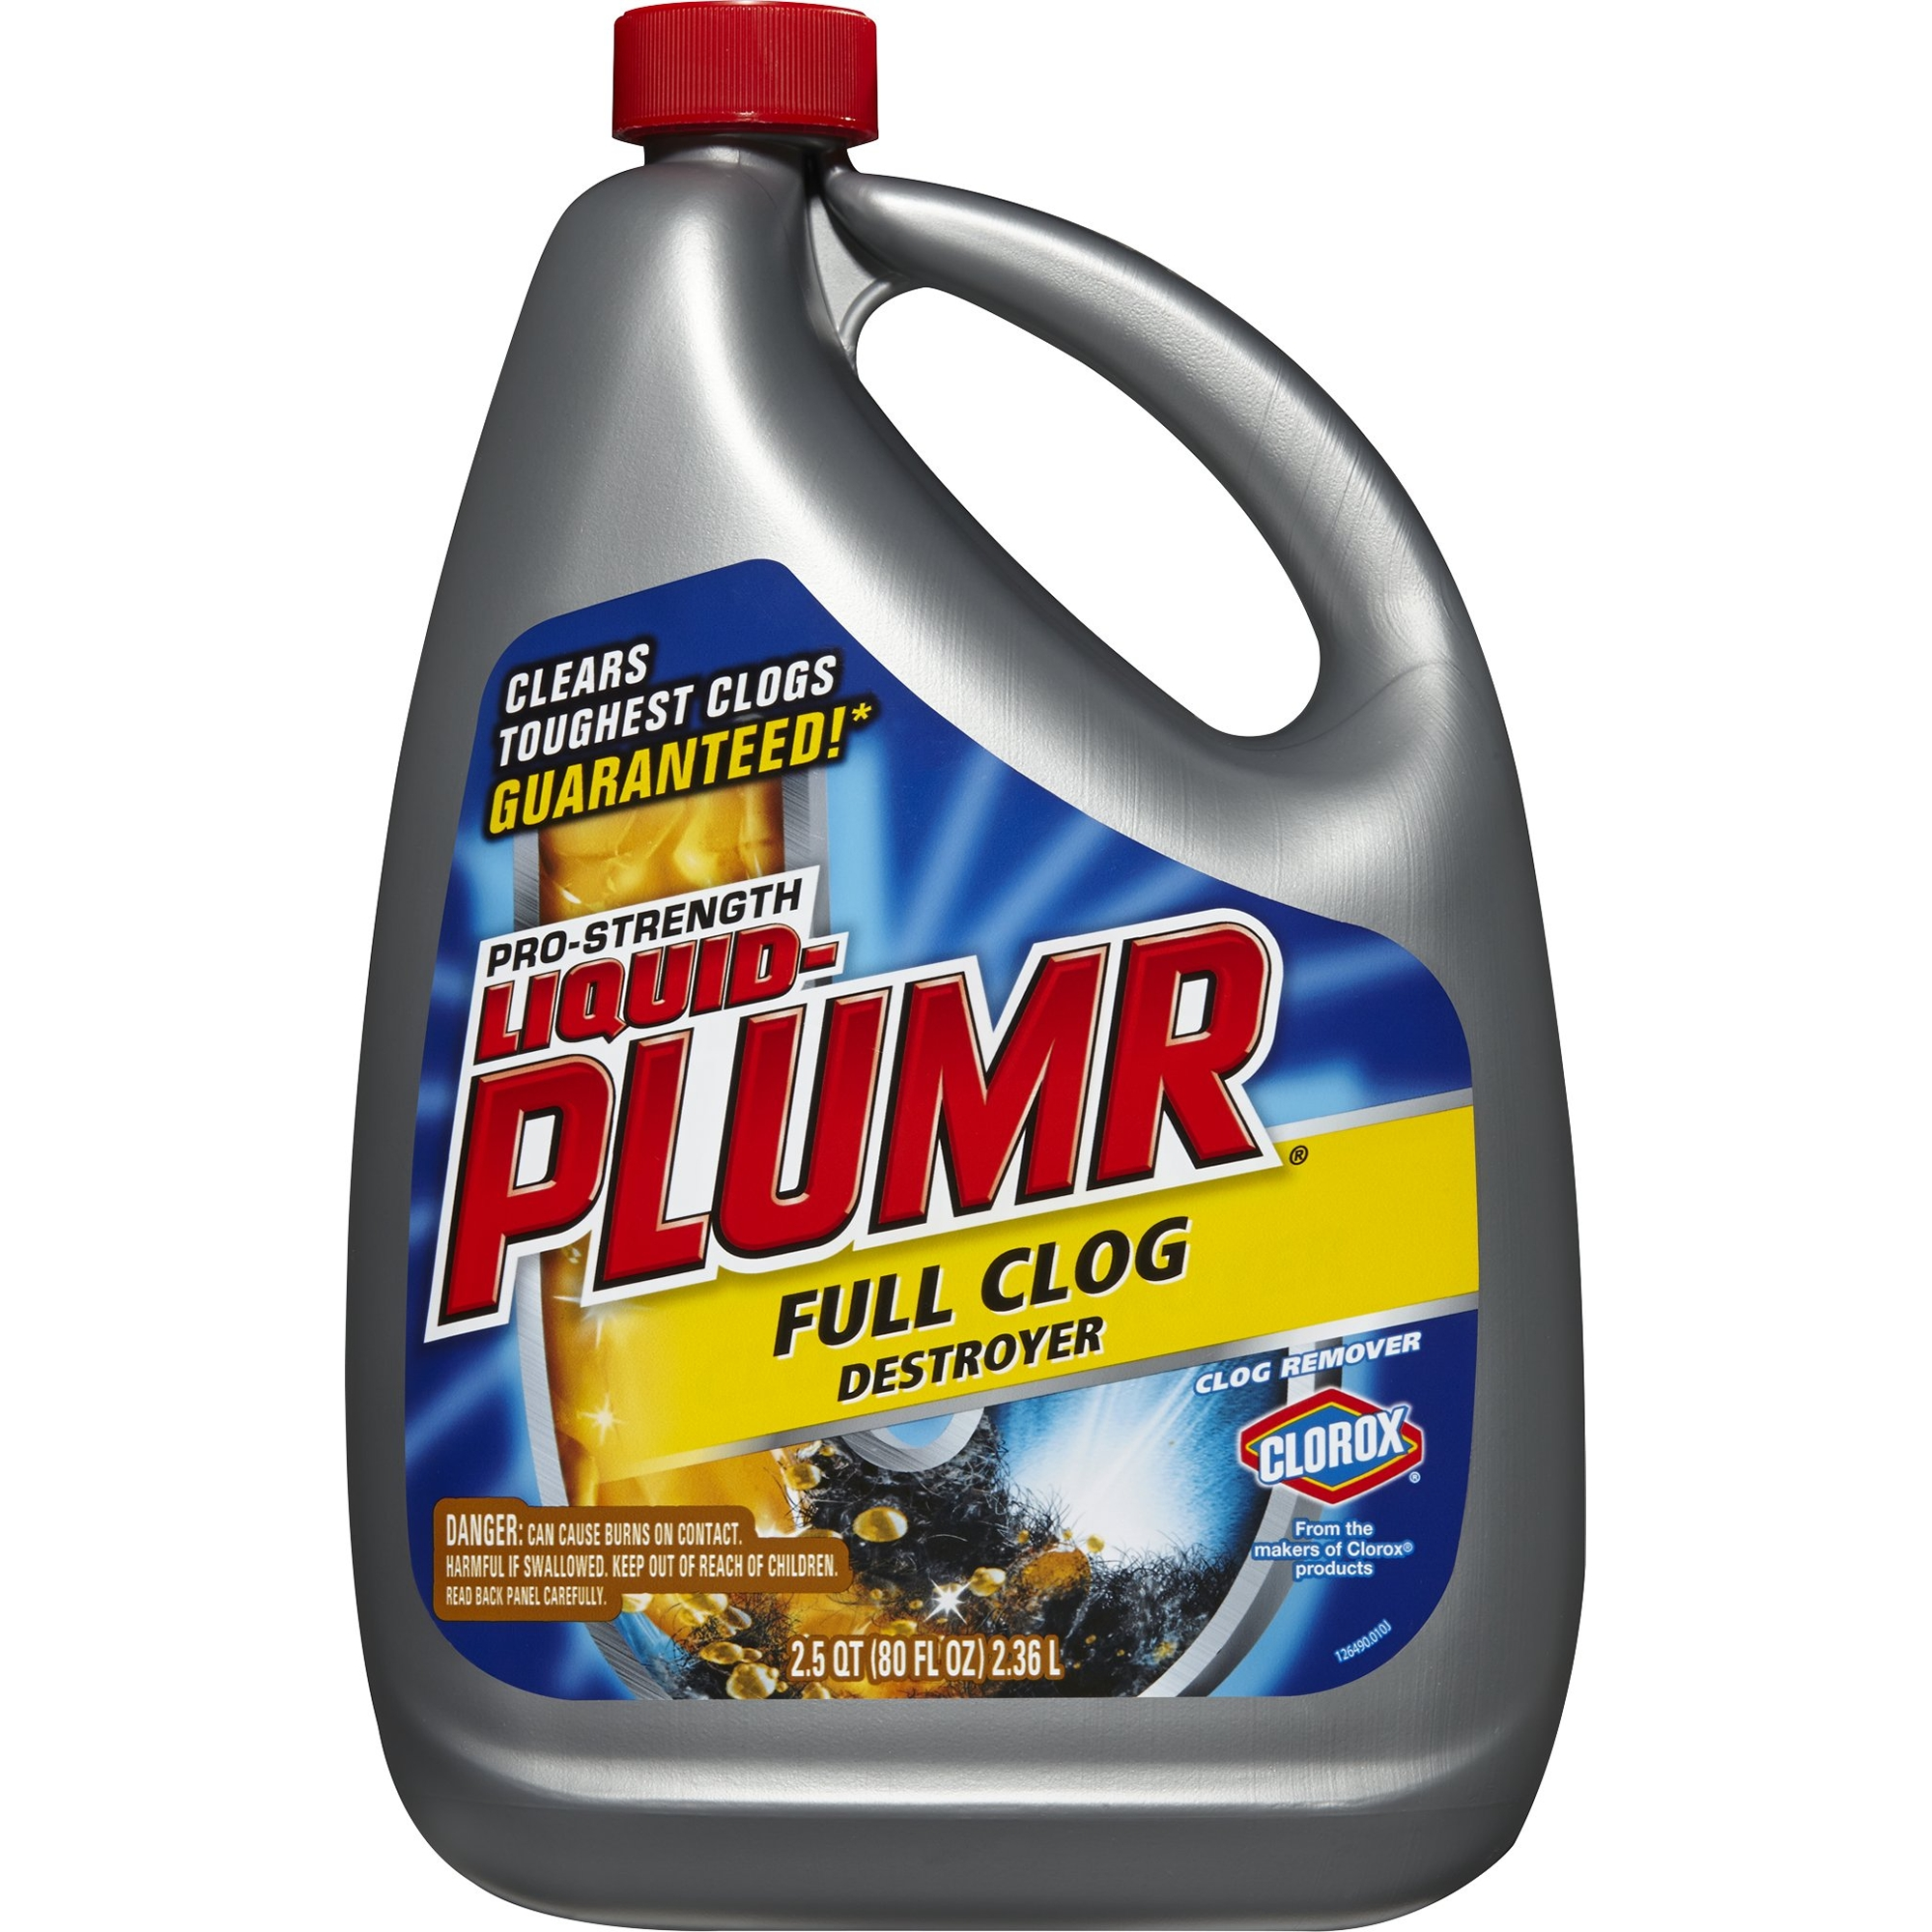 Liquid-Plumr Pro-Strength Clog Remover, Full Clog Destroyer, 80 Fluid Ounces